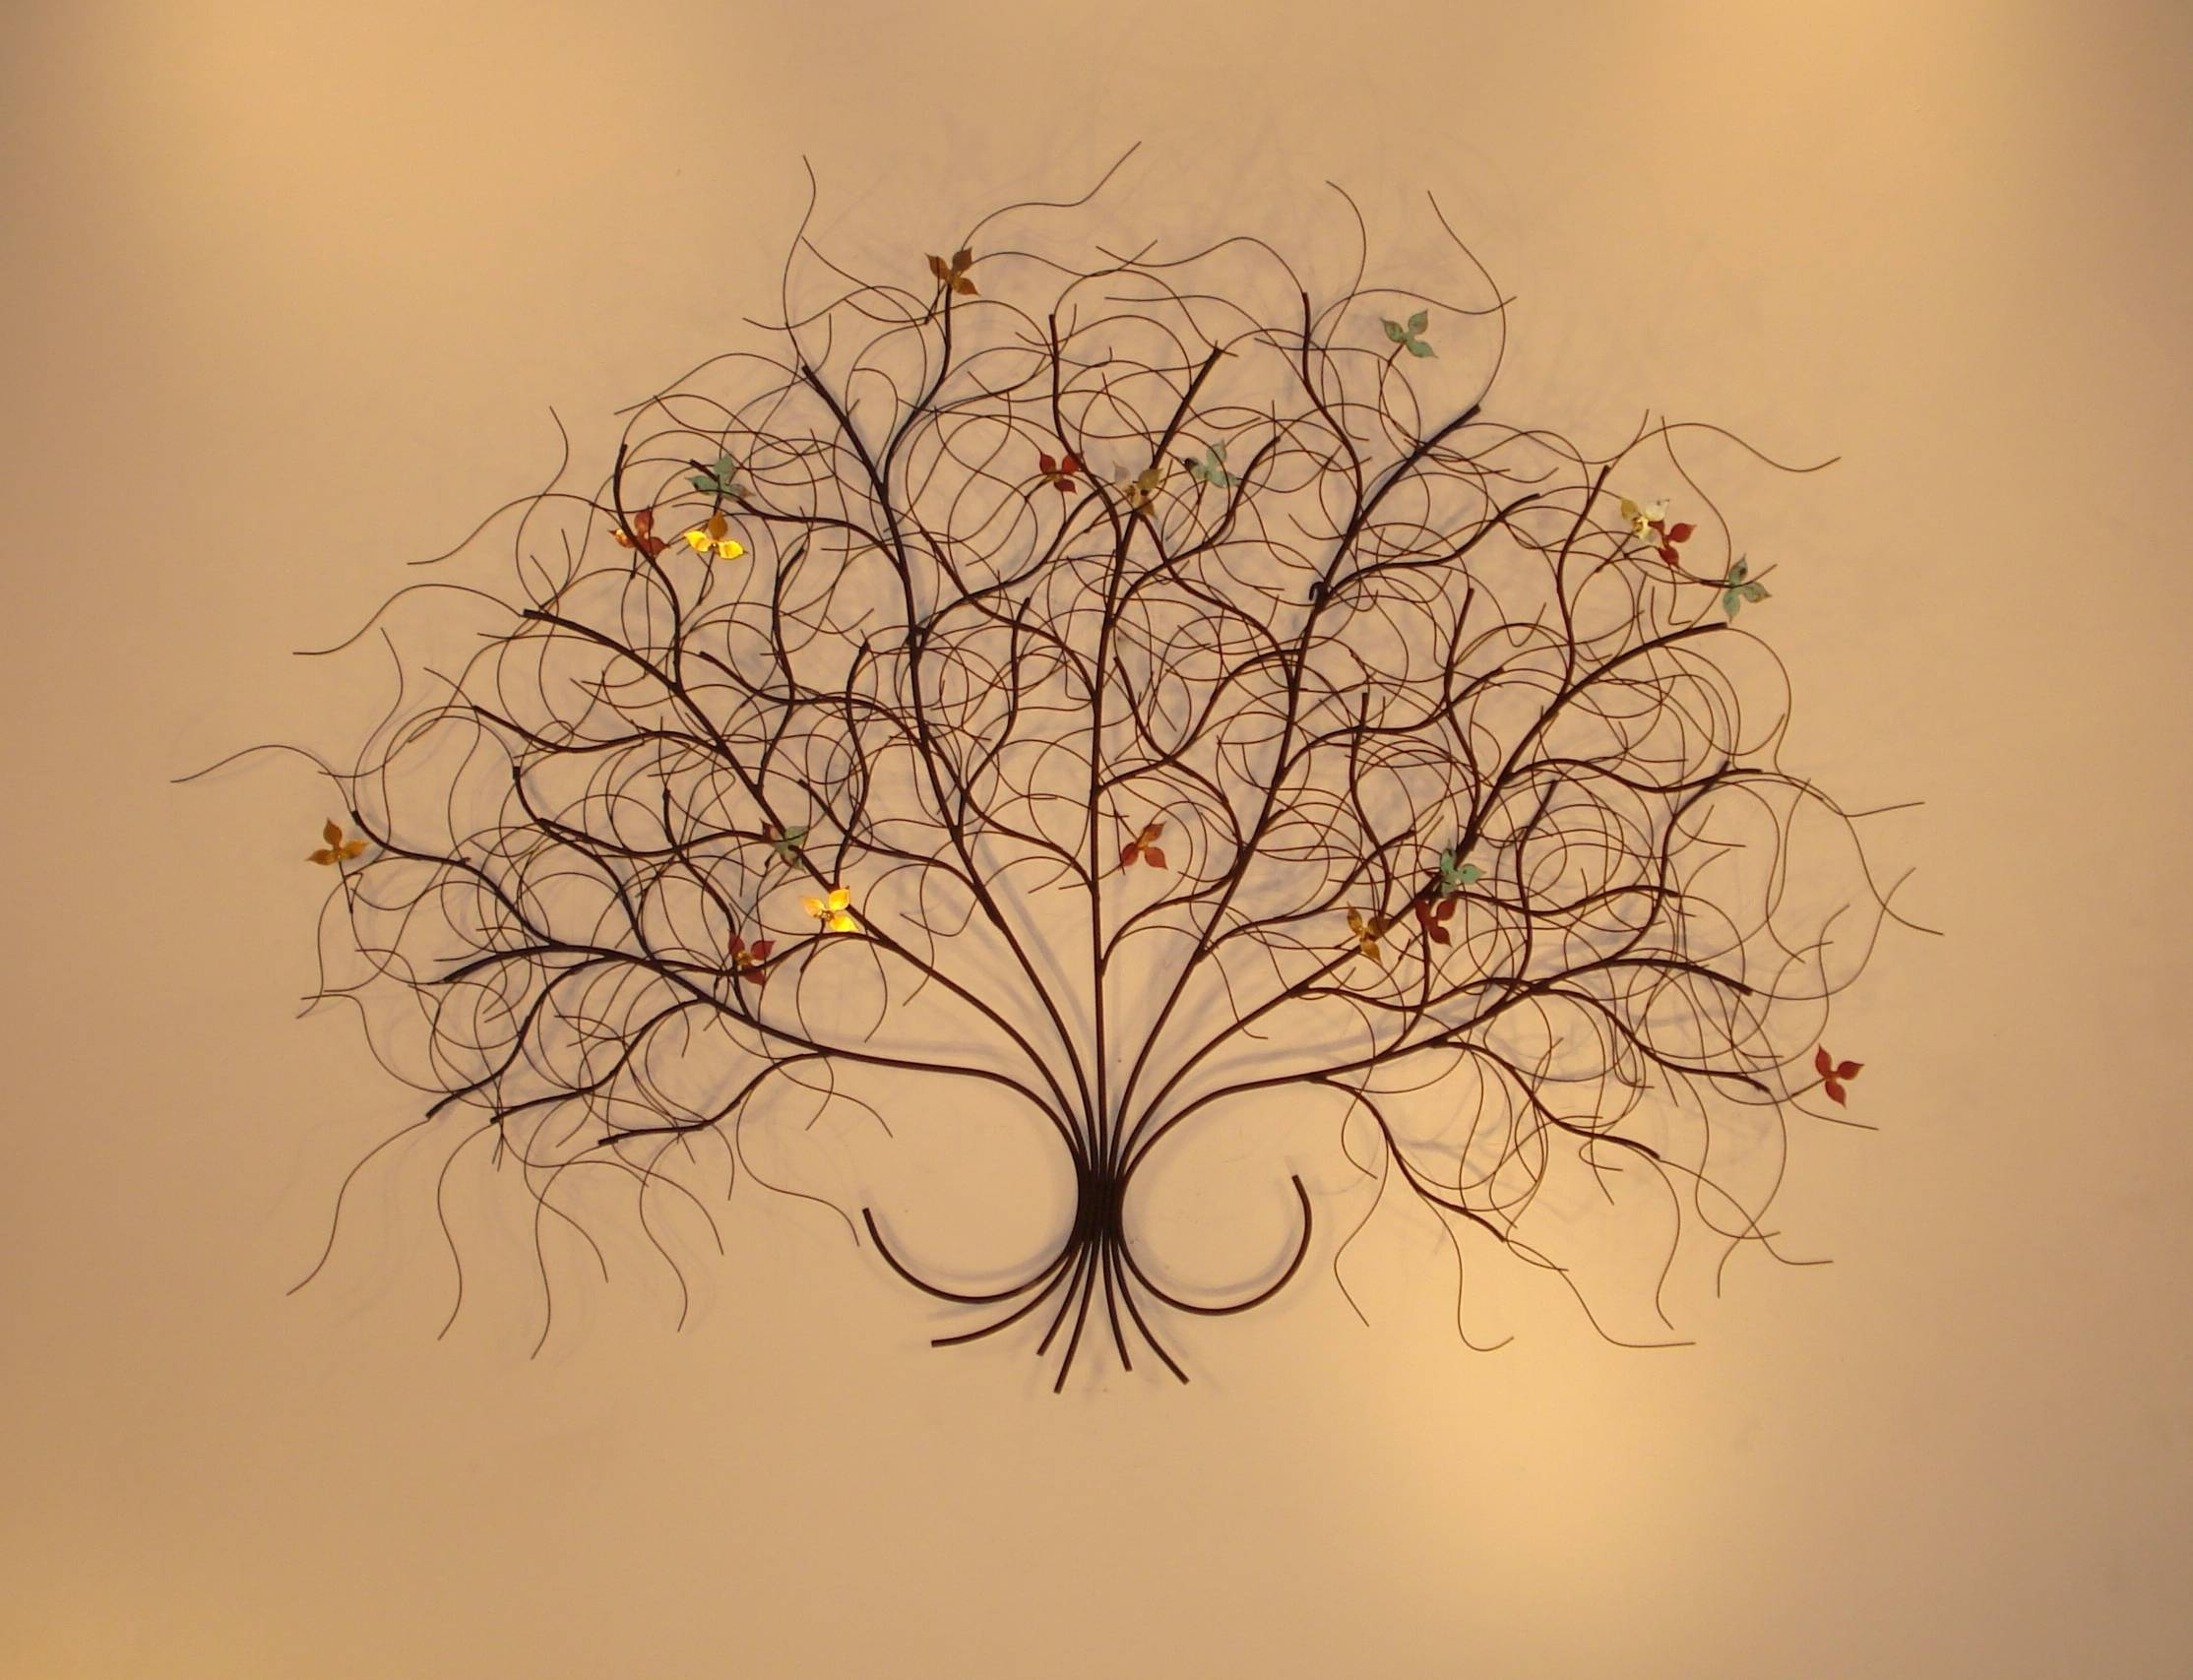 Metal Wall Sculptures And Wall Art – Branches | Gurtan Designs Within Current Botanical Metal Wall Art (View 18 of 25)